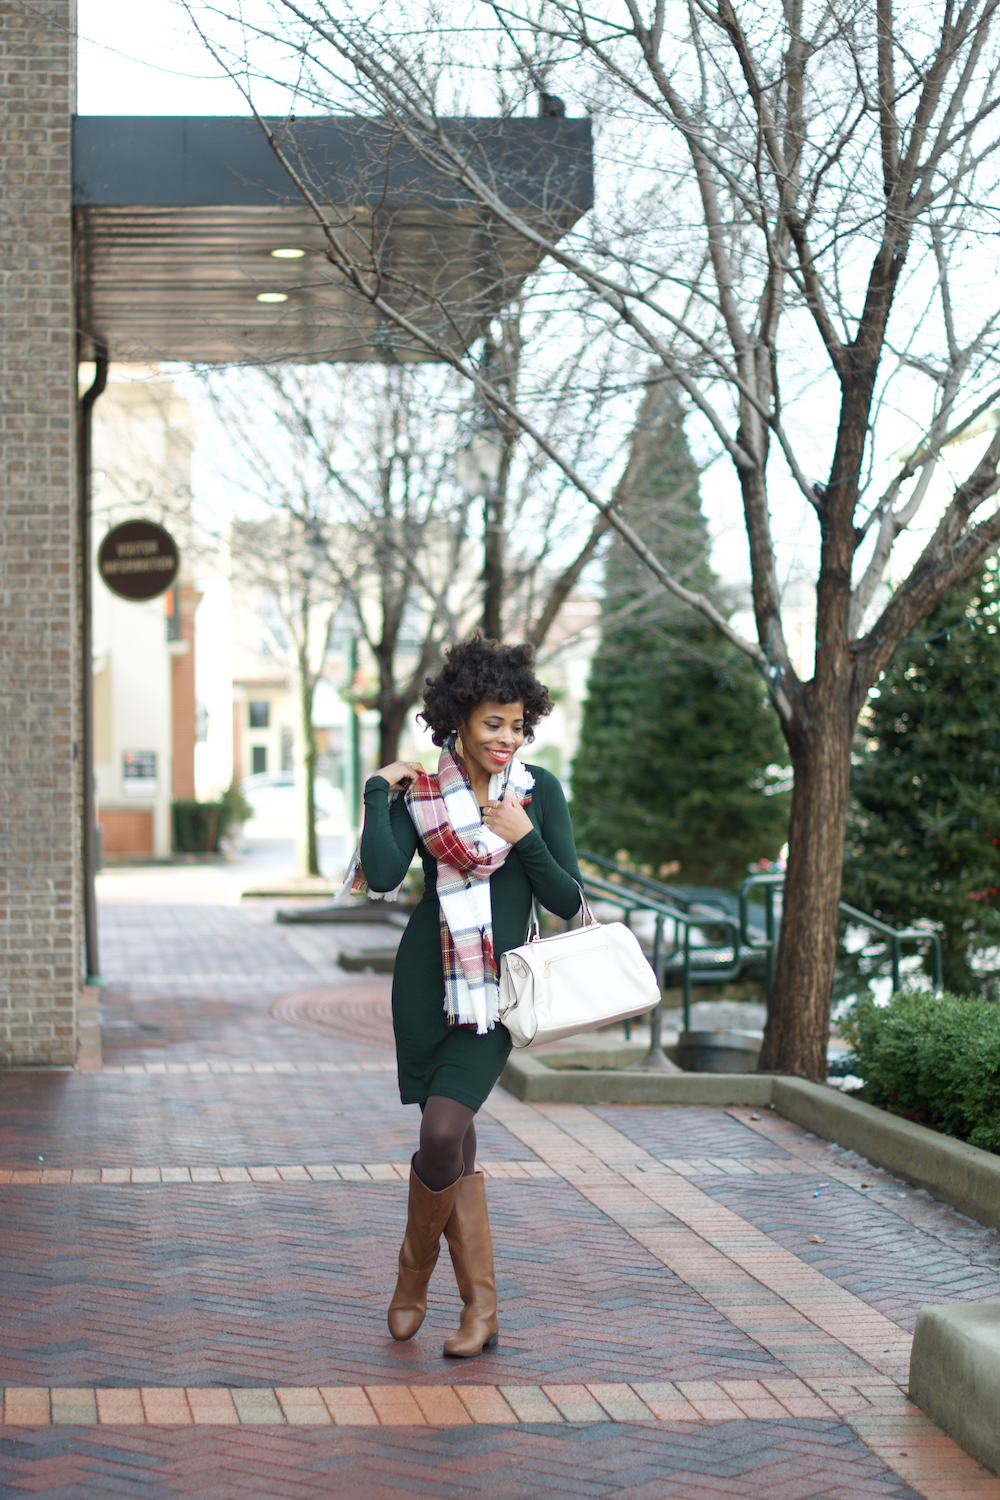 amber-shannon-chicago-fashion-blogger-12-27-16